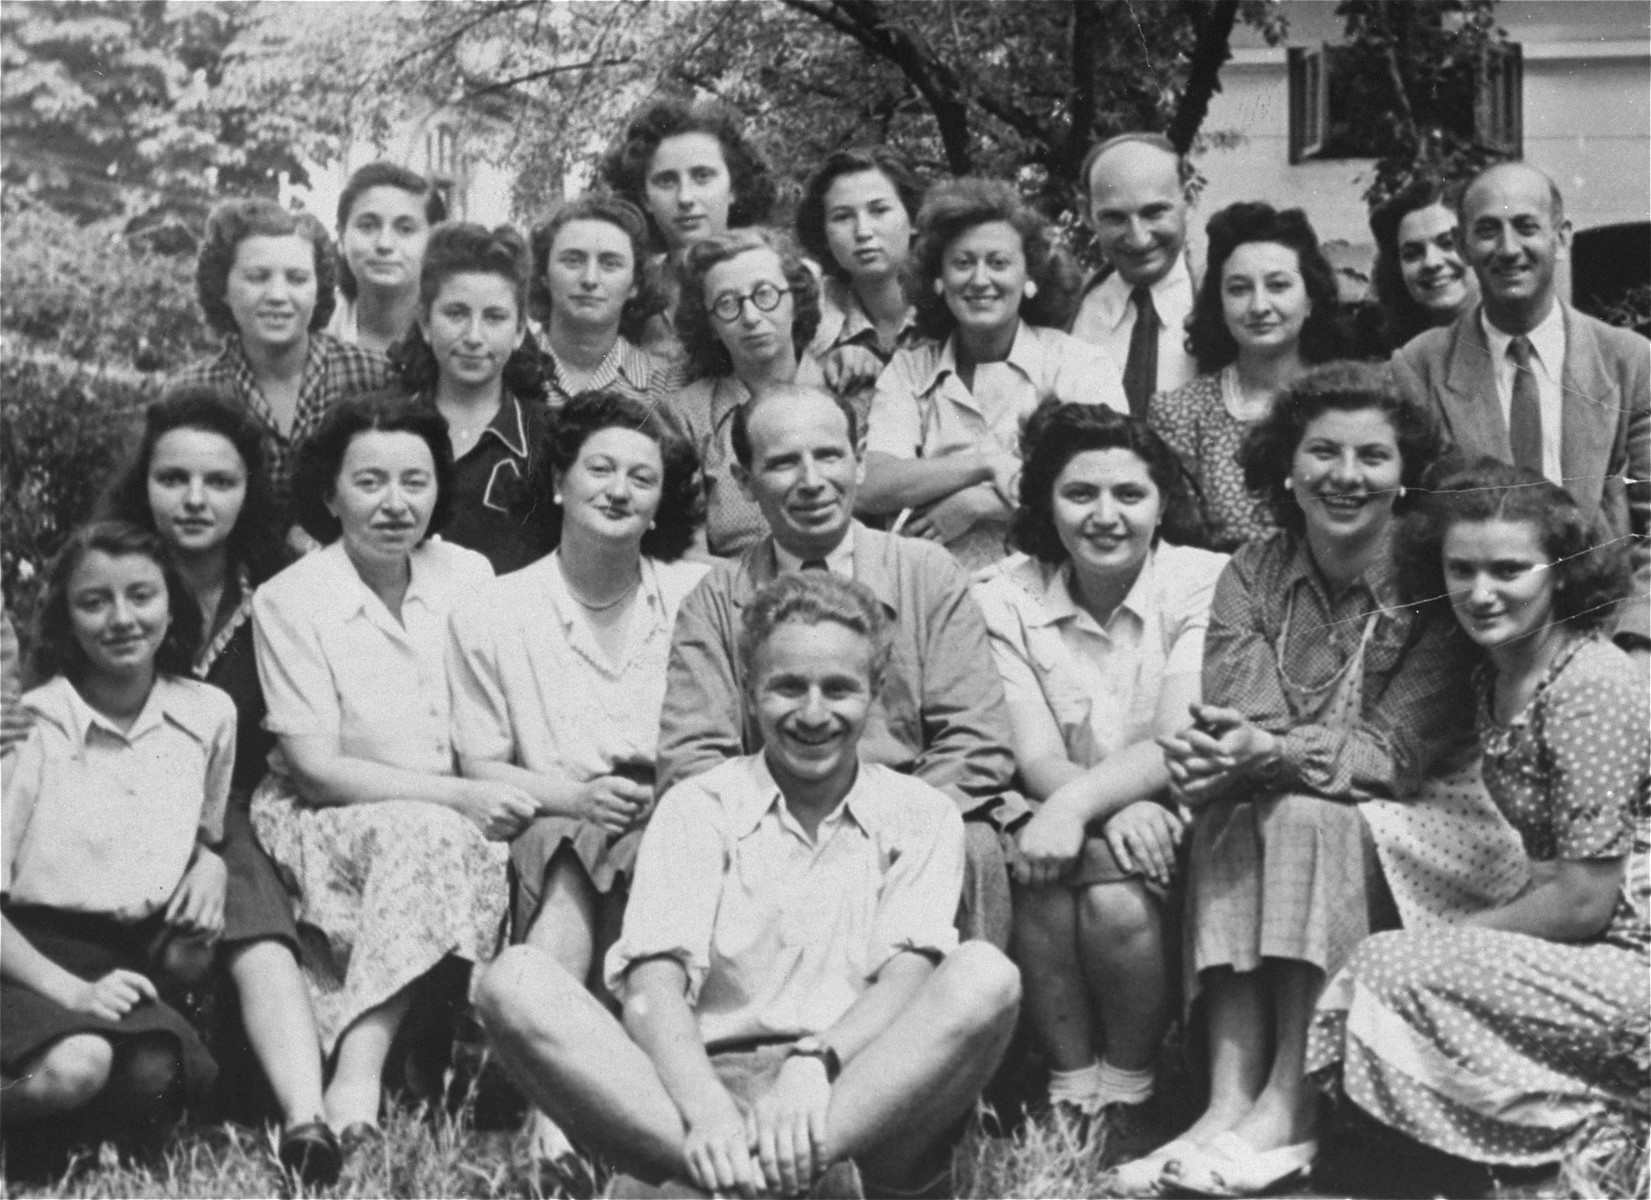 Group portrait of Jewish students attending a book-binding course in Bucharest, Romania.    Among those pictured is Jeanine Gutman (back row, third from the right).  This vocational school was one of many organized by the Jewish community after Jewish youth were excluded from the Romanian school system.